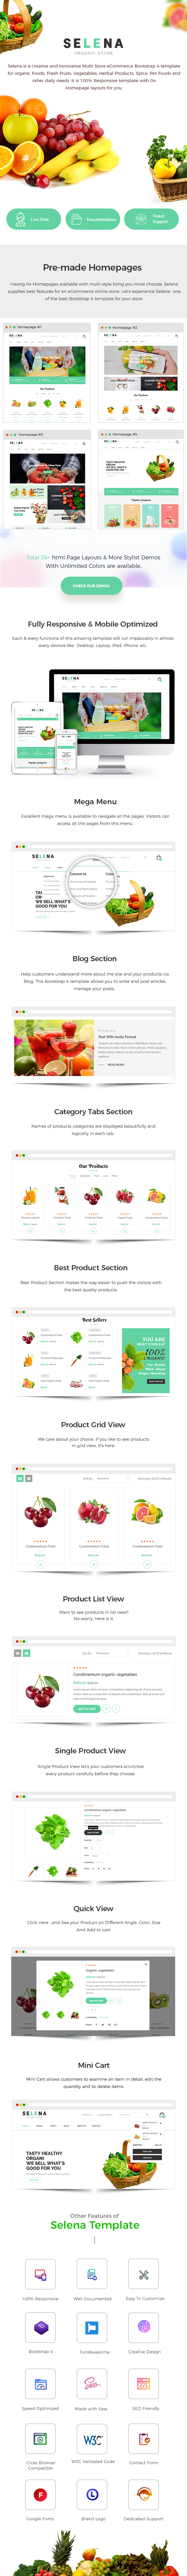 Organic eCommerce Bootstrap 4 Template